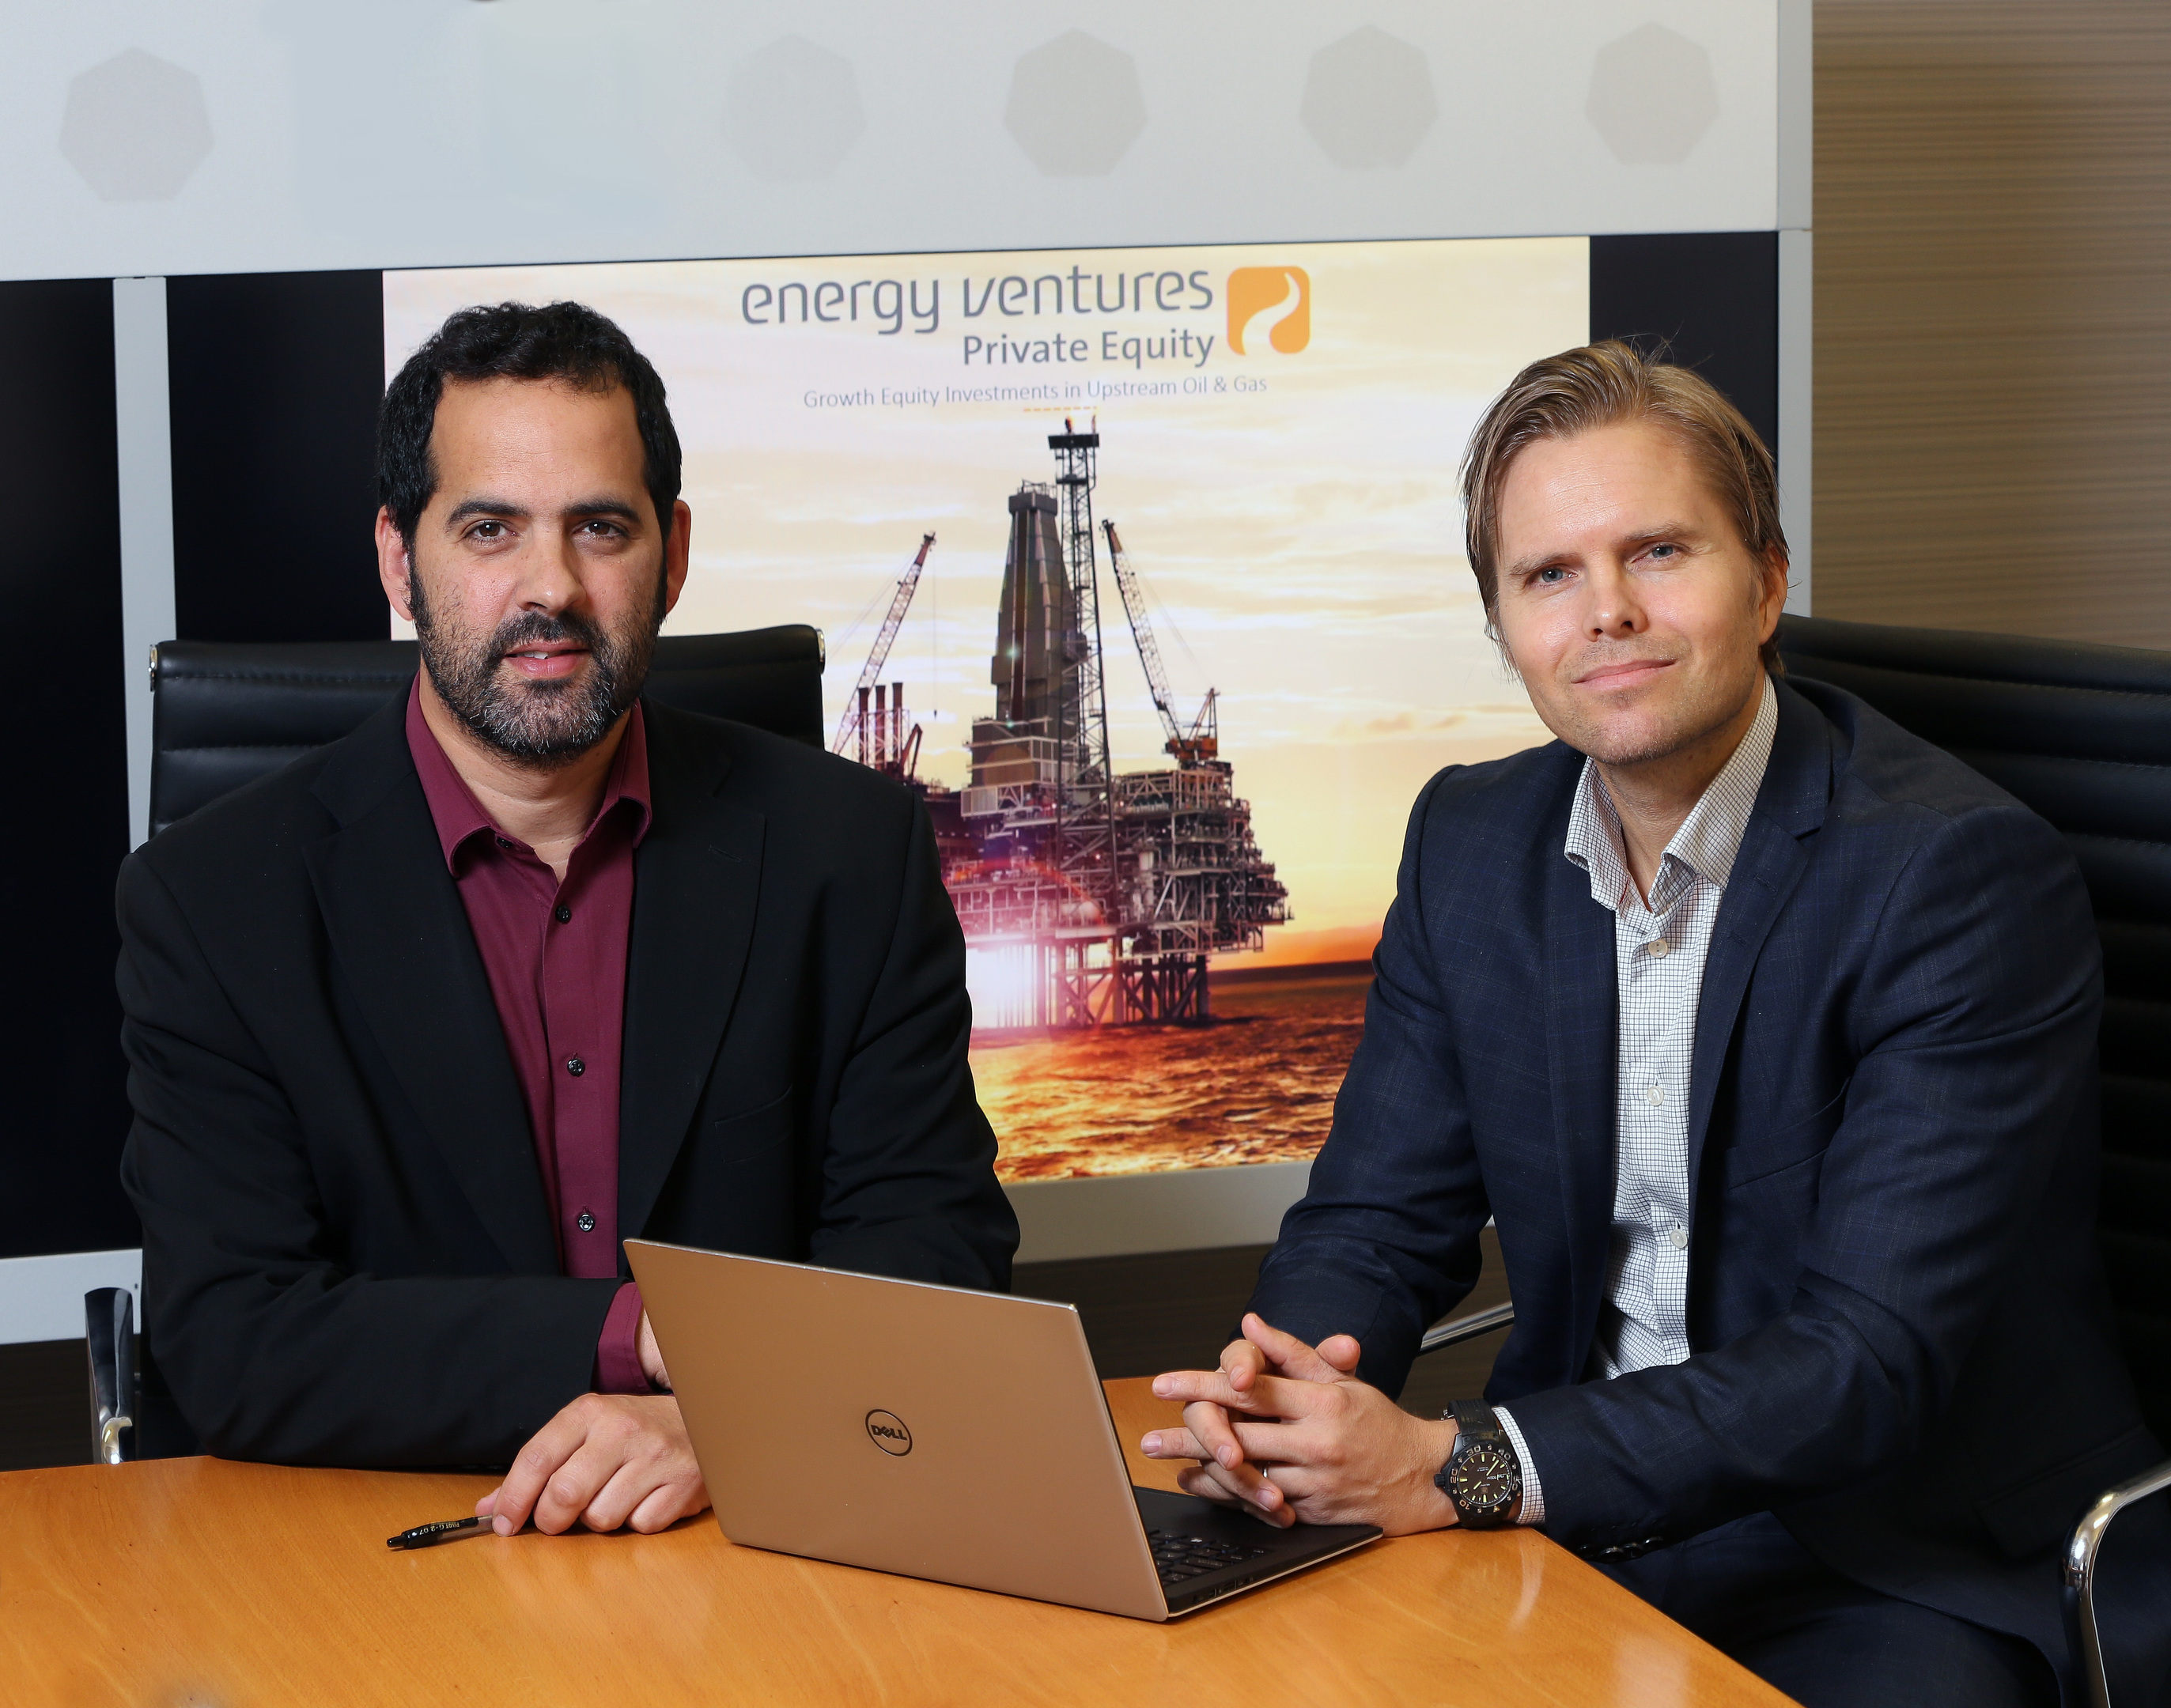 L to R – Energy Ventures partner Greg Herrera and Tomas Hvamb, Energy Ventures' investment director.